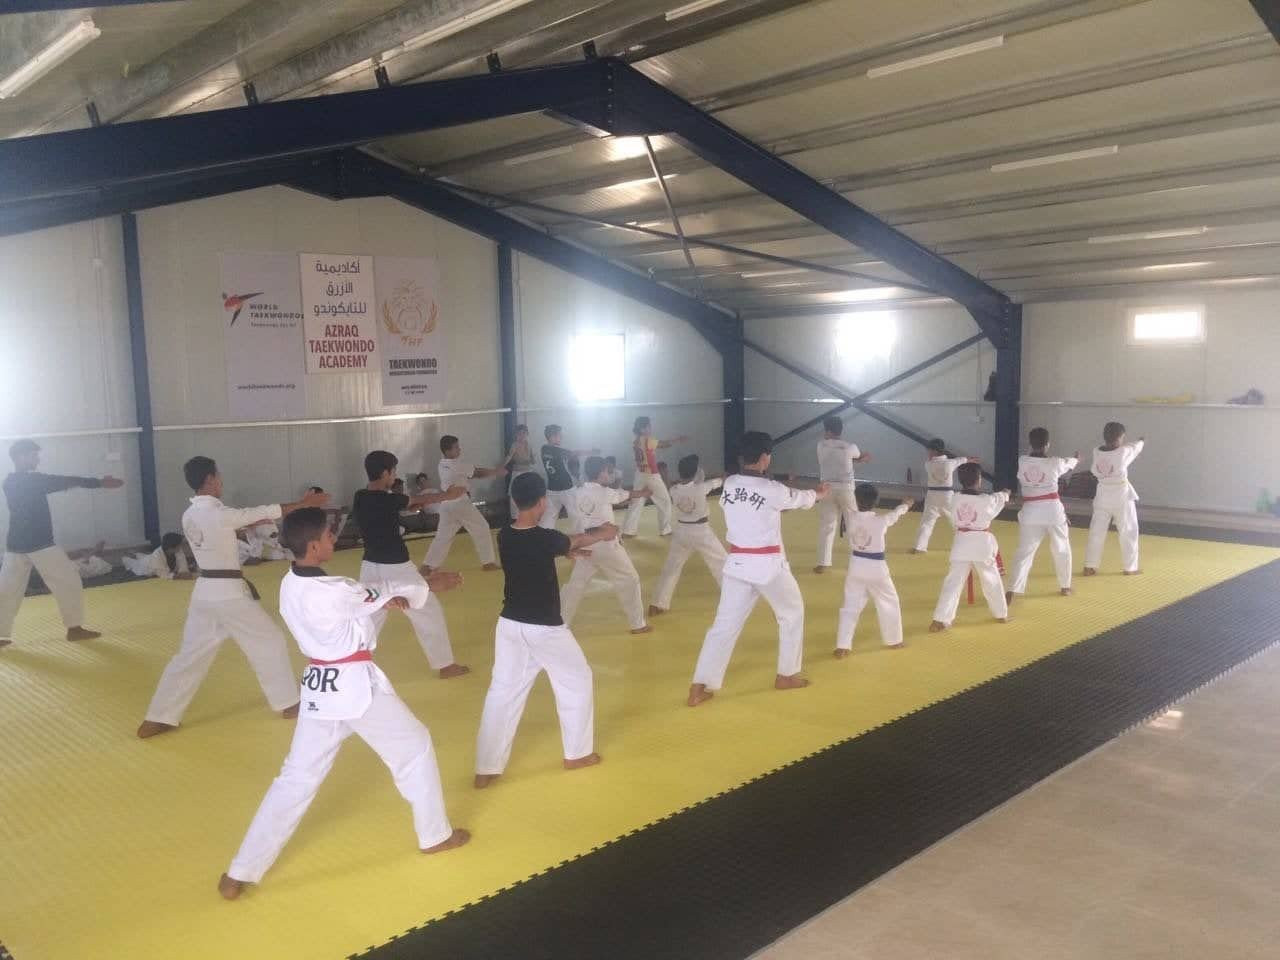 Taekwondo Humanitarian Foundation training facility in Azraq produces ninth black belt